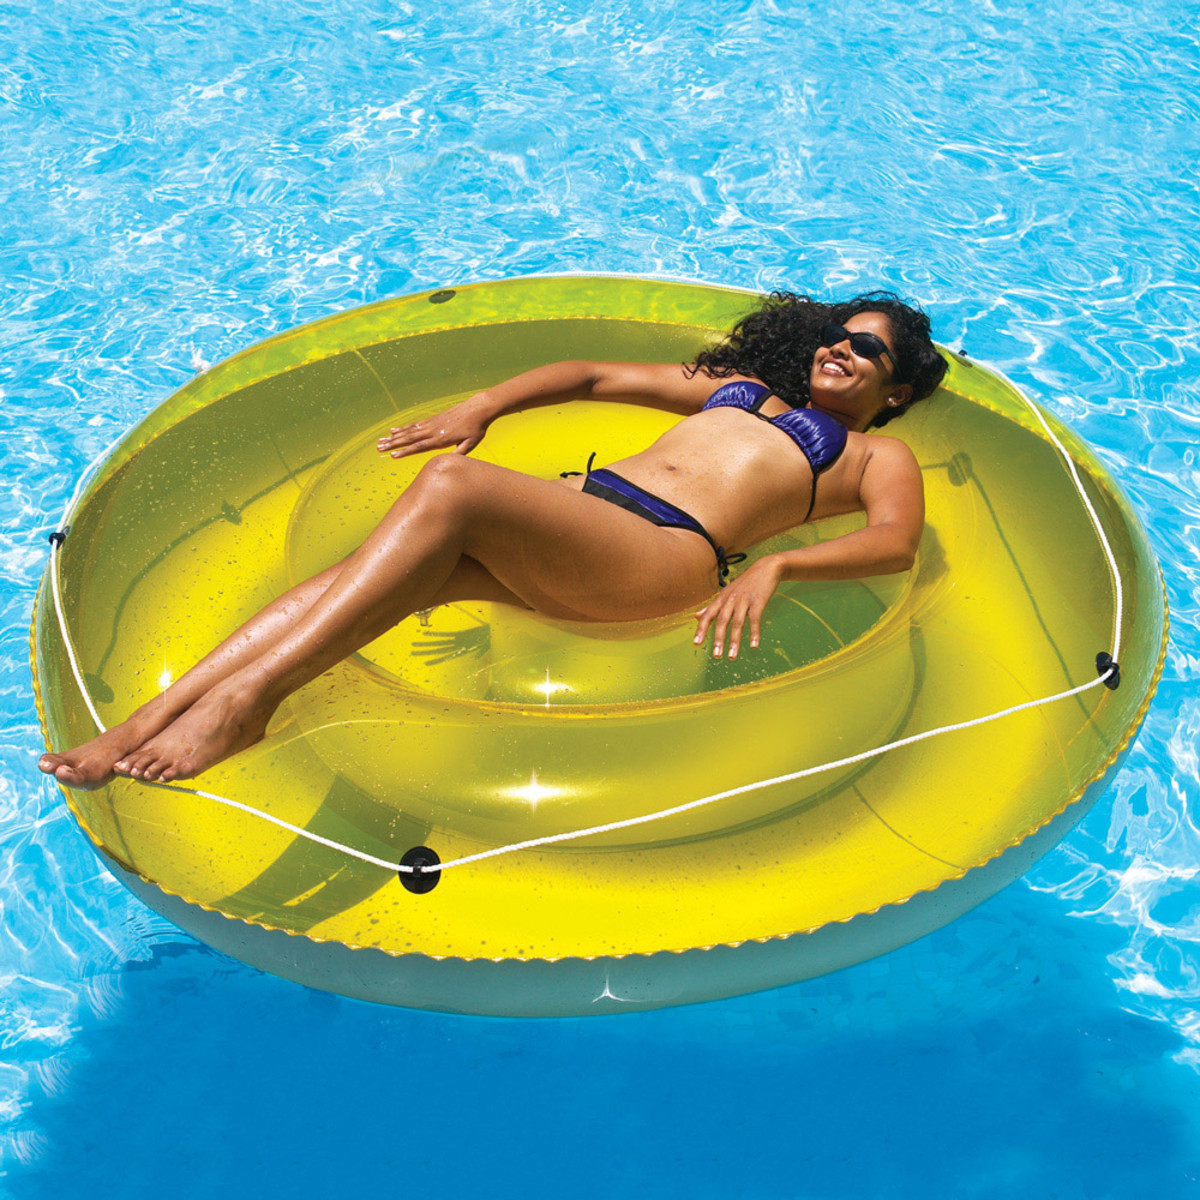 Swimline island lounger inflatable lounges splash super center for Intex swim centre family lounge pool cover